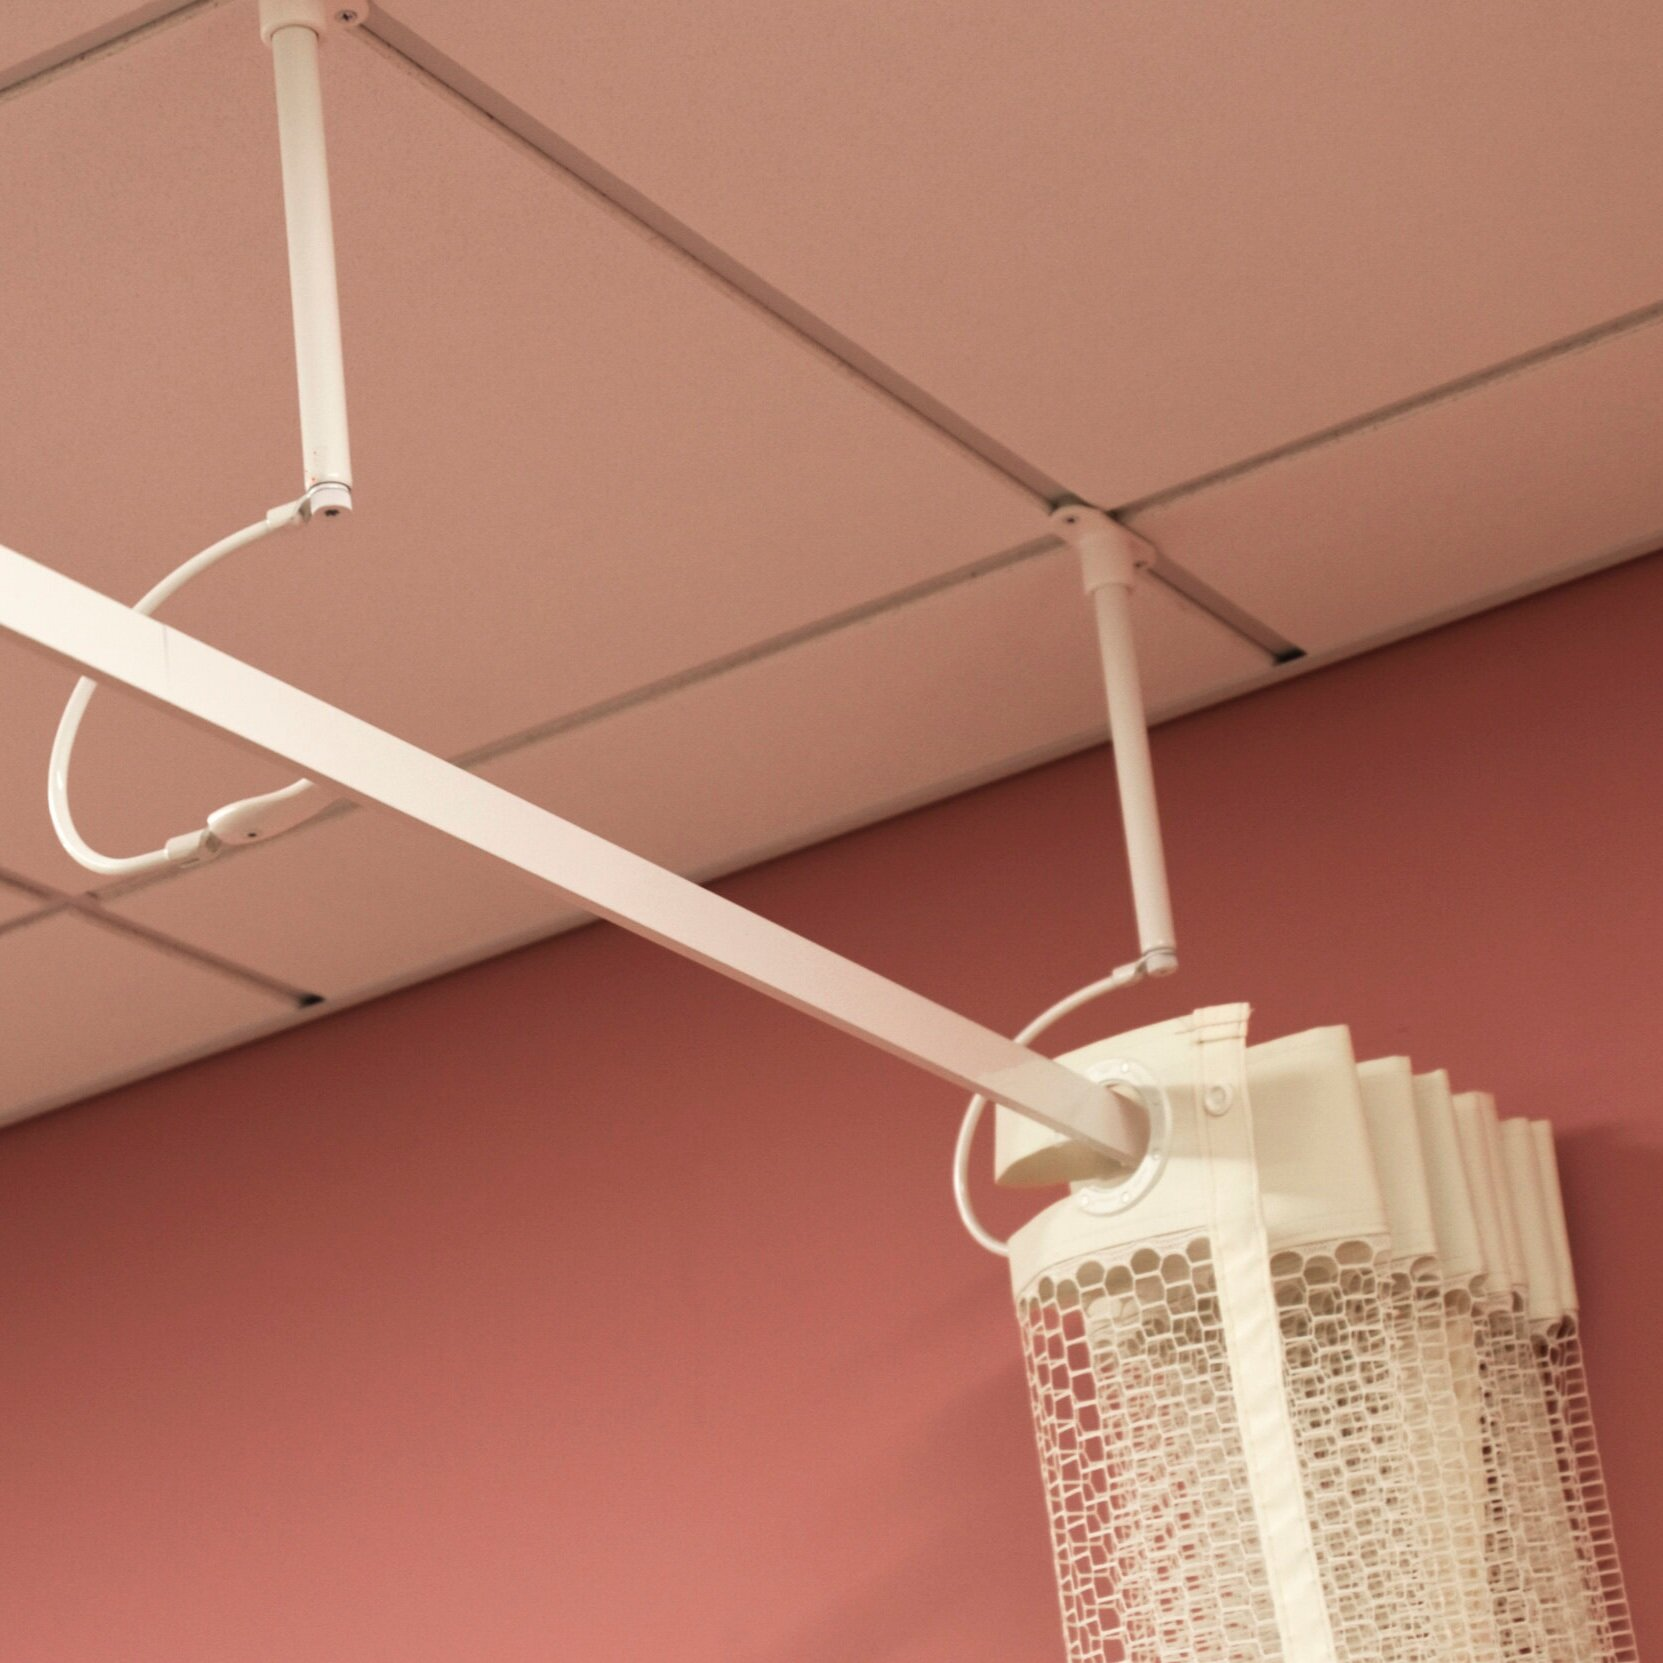 cubicle curtain track system on the